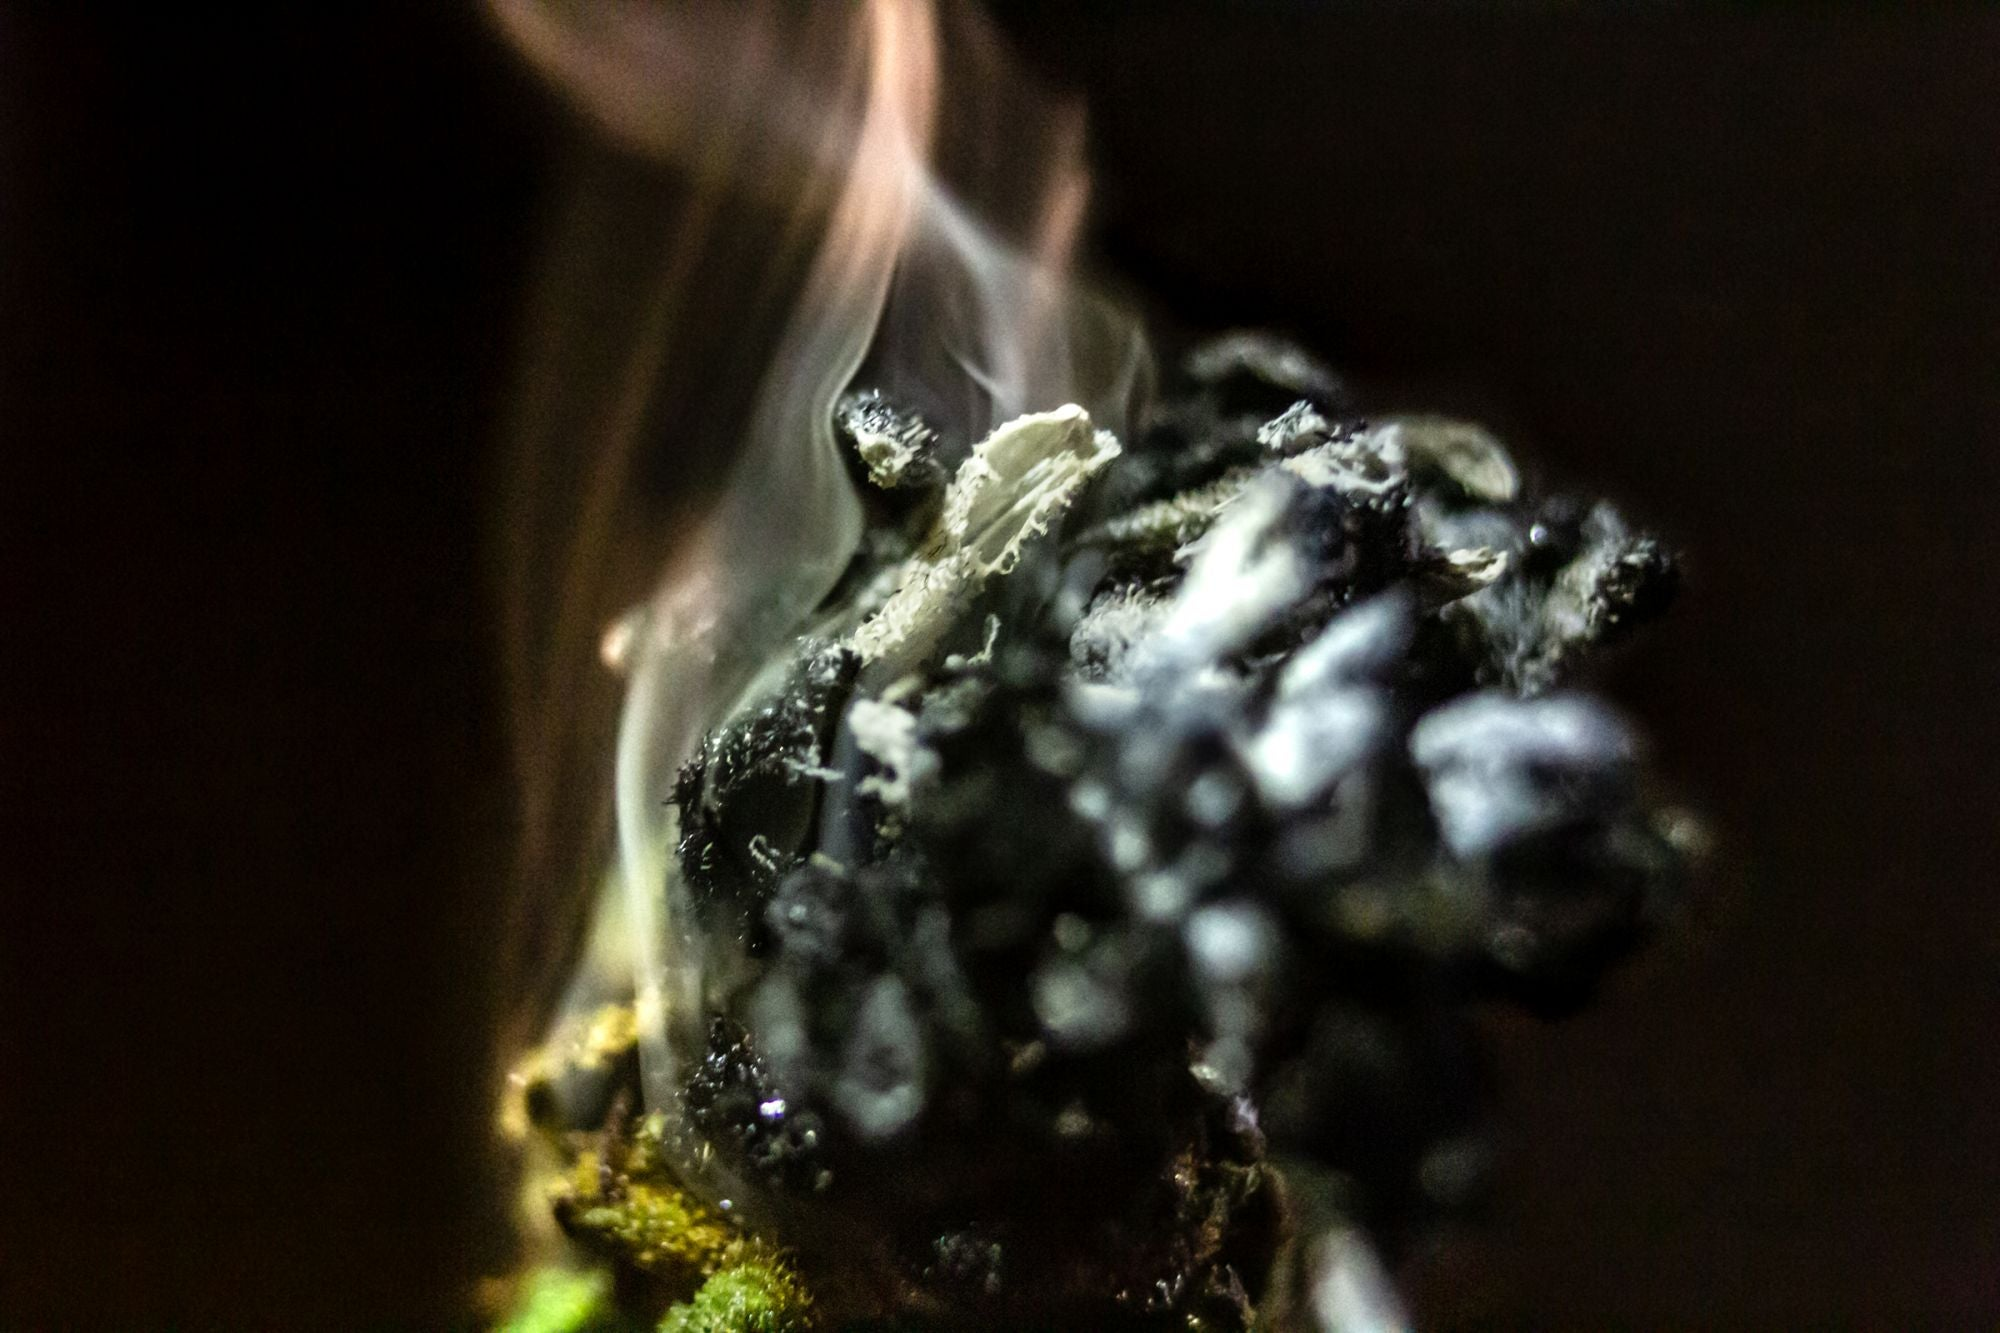 Science: People in China Were Using Cannabis in Rituals 2,500 Years Ago